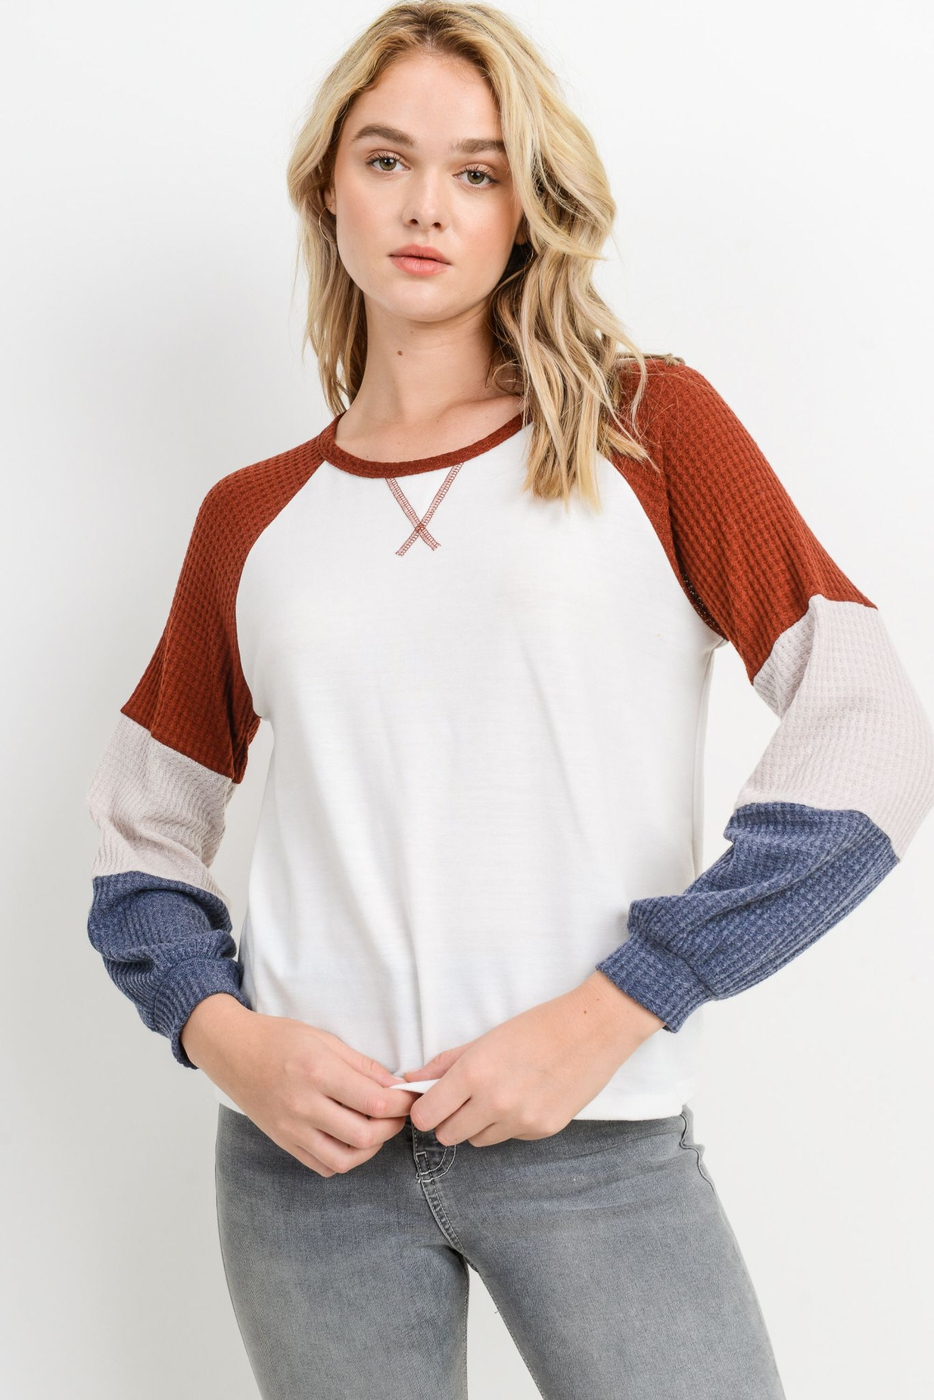 French Terry Color Block Raglan Top - orangeshine.com